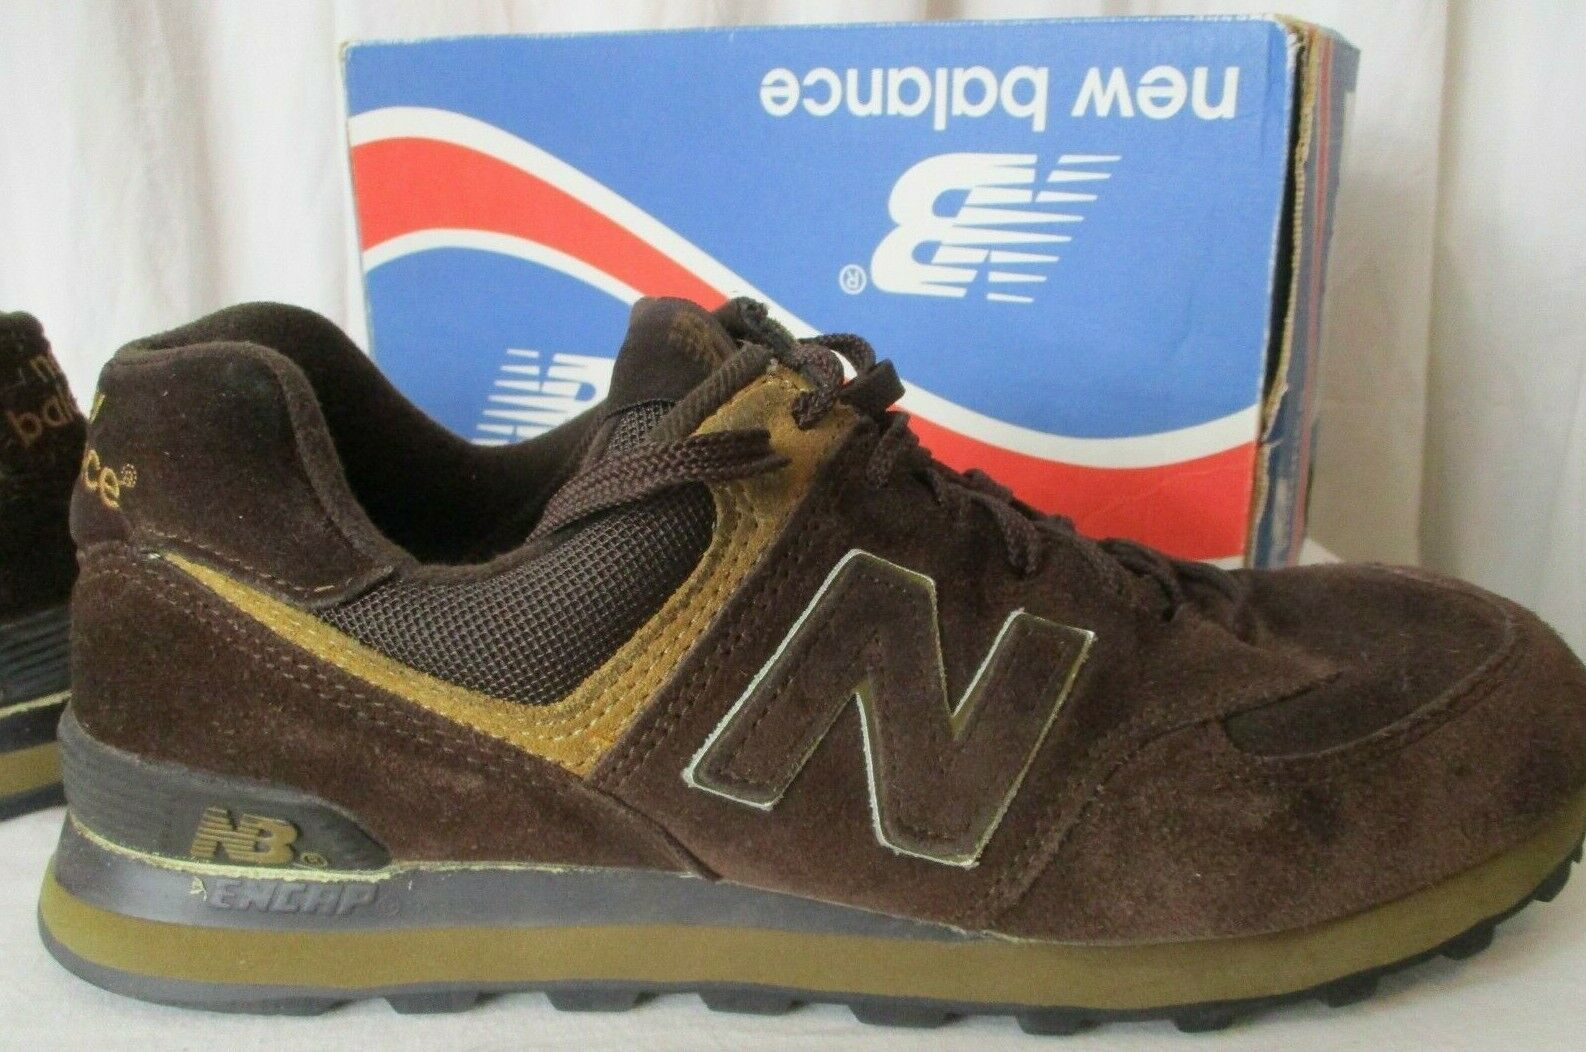 New Balance Men 10 M574BS Encap Sneakers Shoes Chocolate Brown image 8